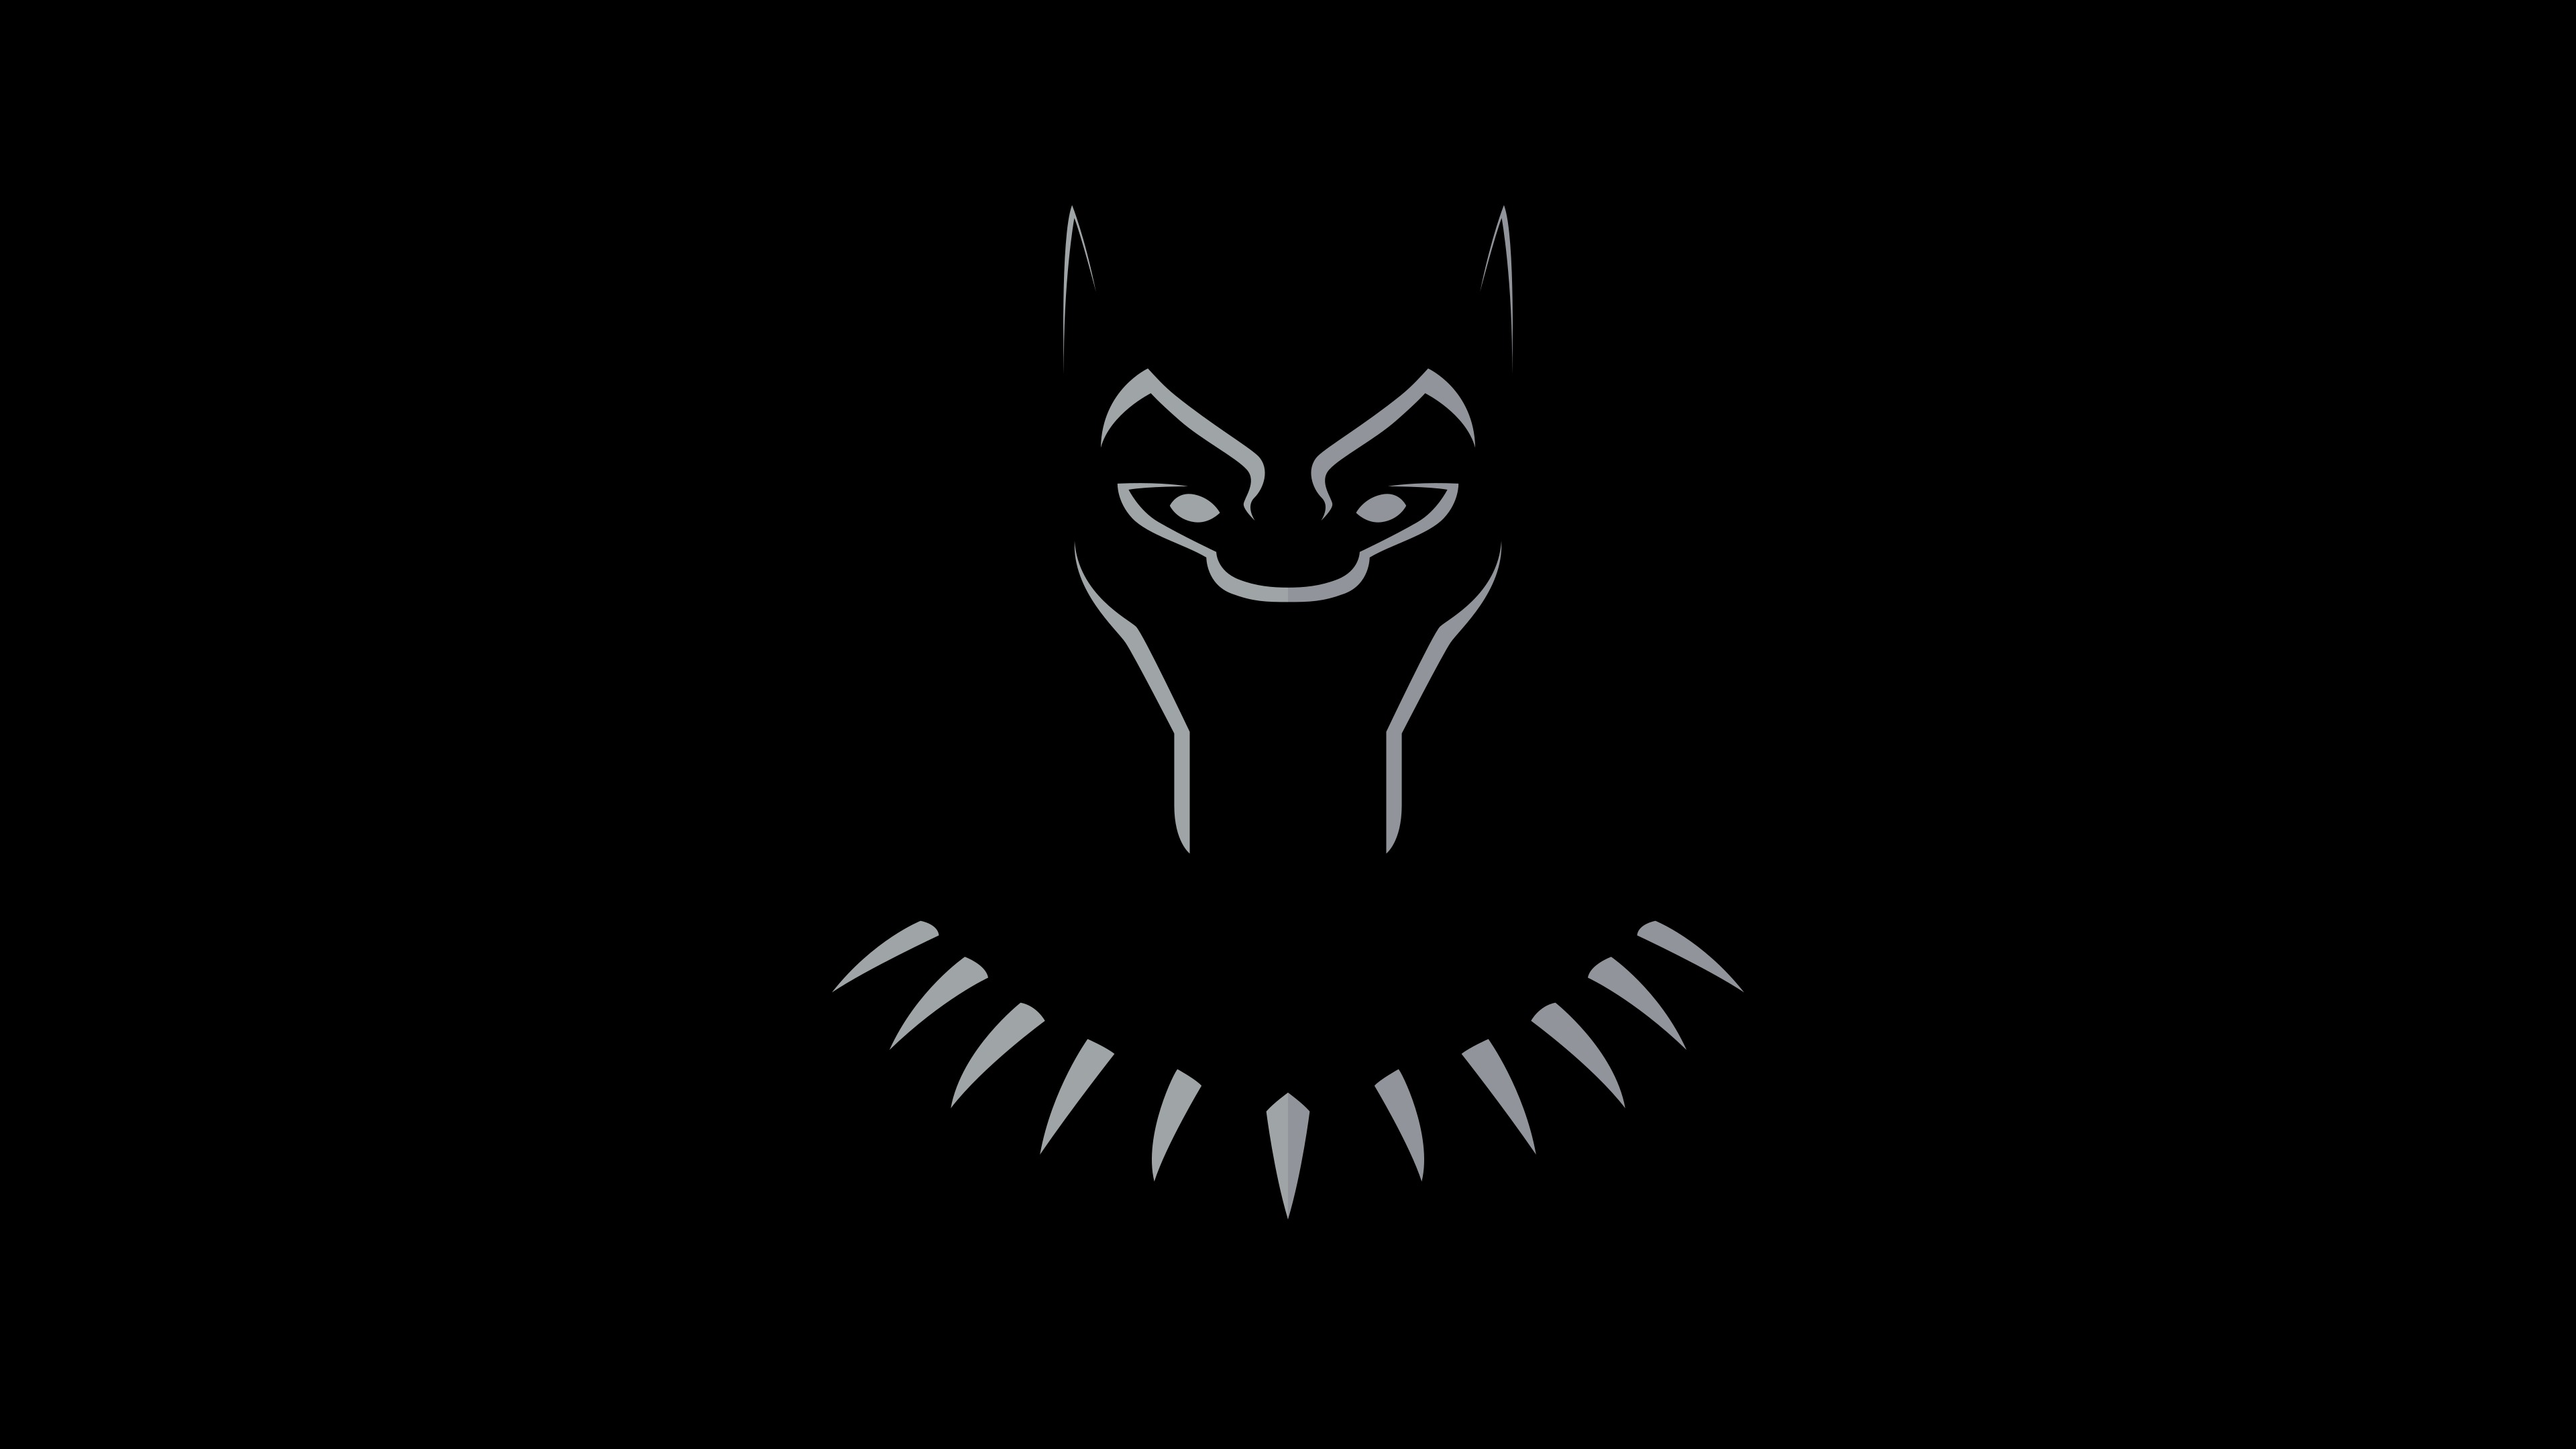 960x544 Black Panther Flat Digital Art 960x544 Resolution Wallpaper Hd Minimalist 4k Wallpapers Images Photos And Background